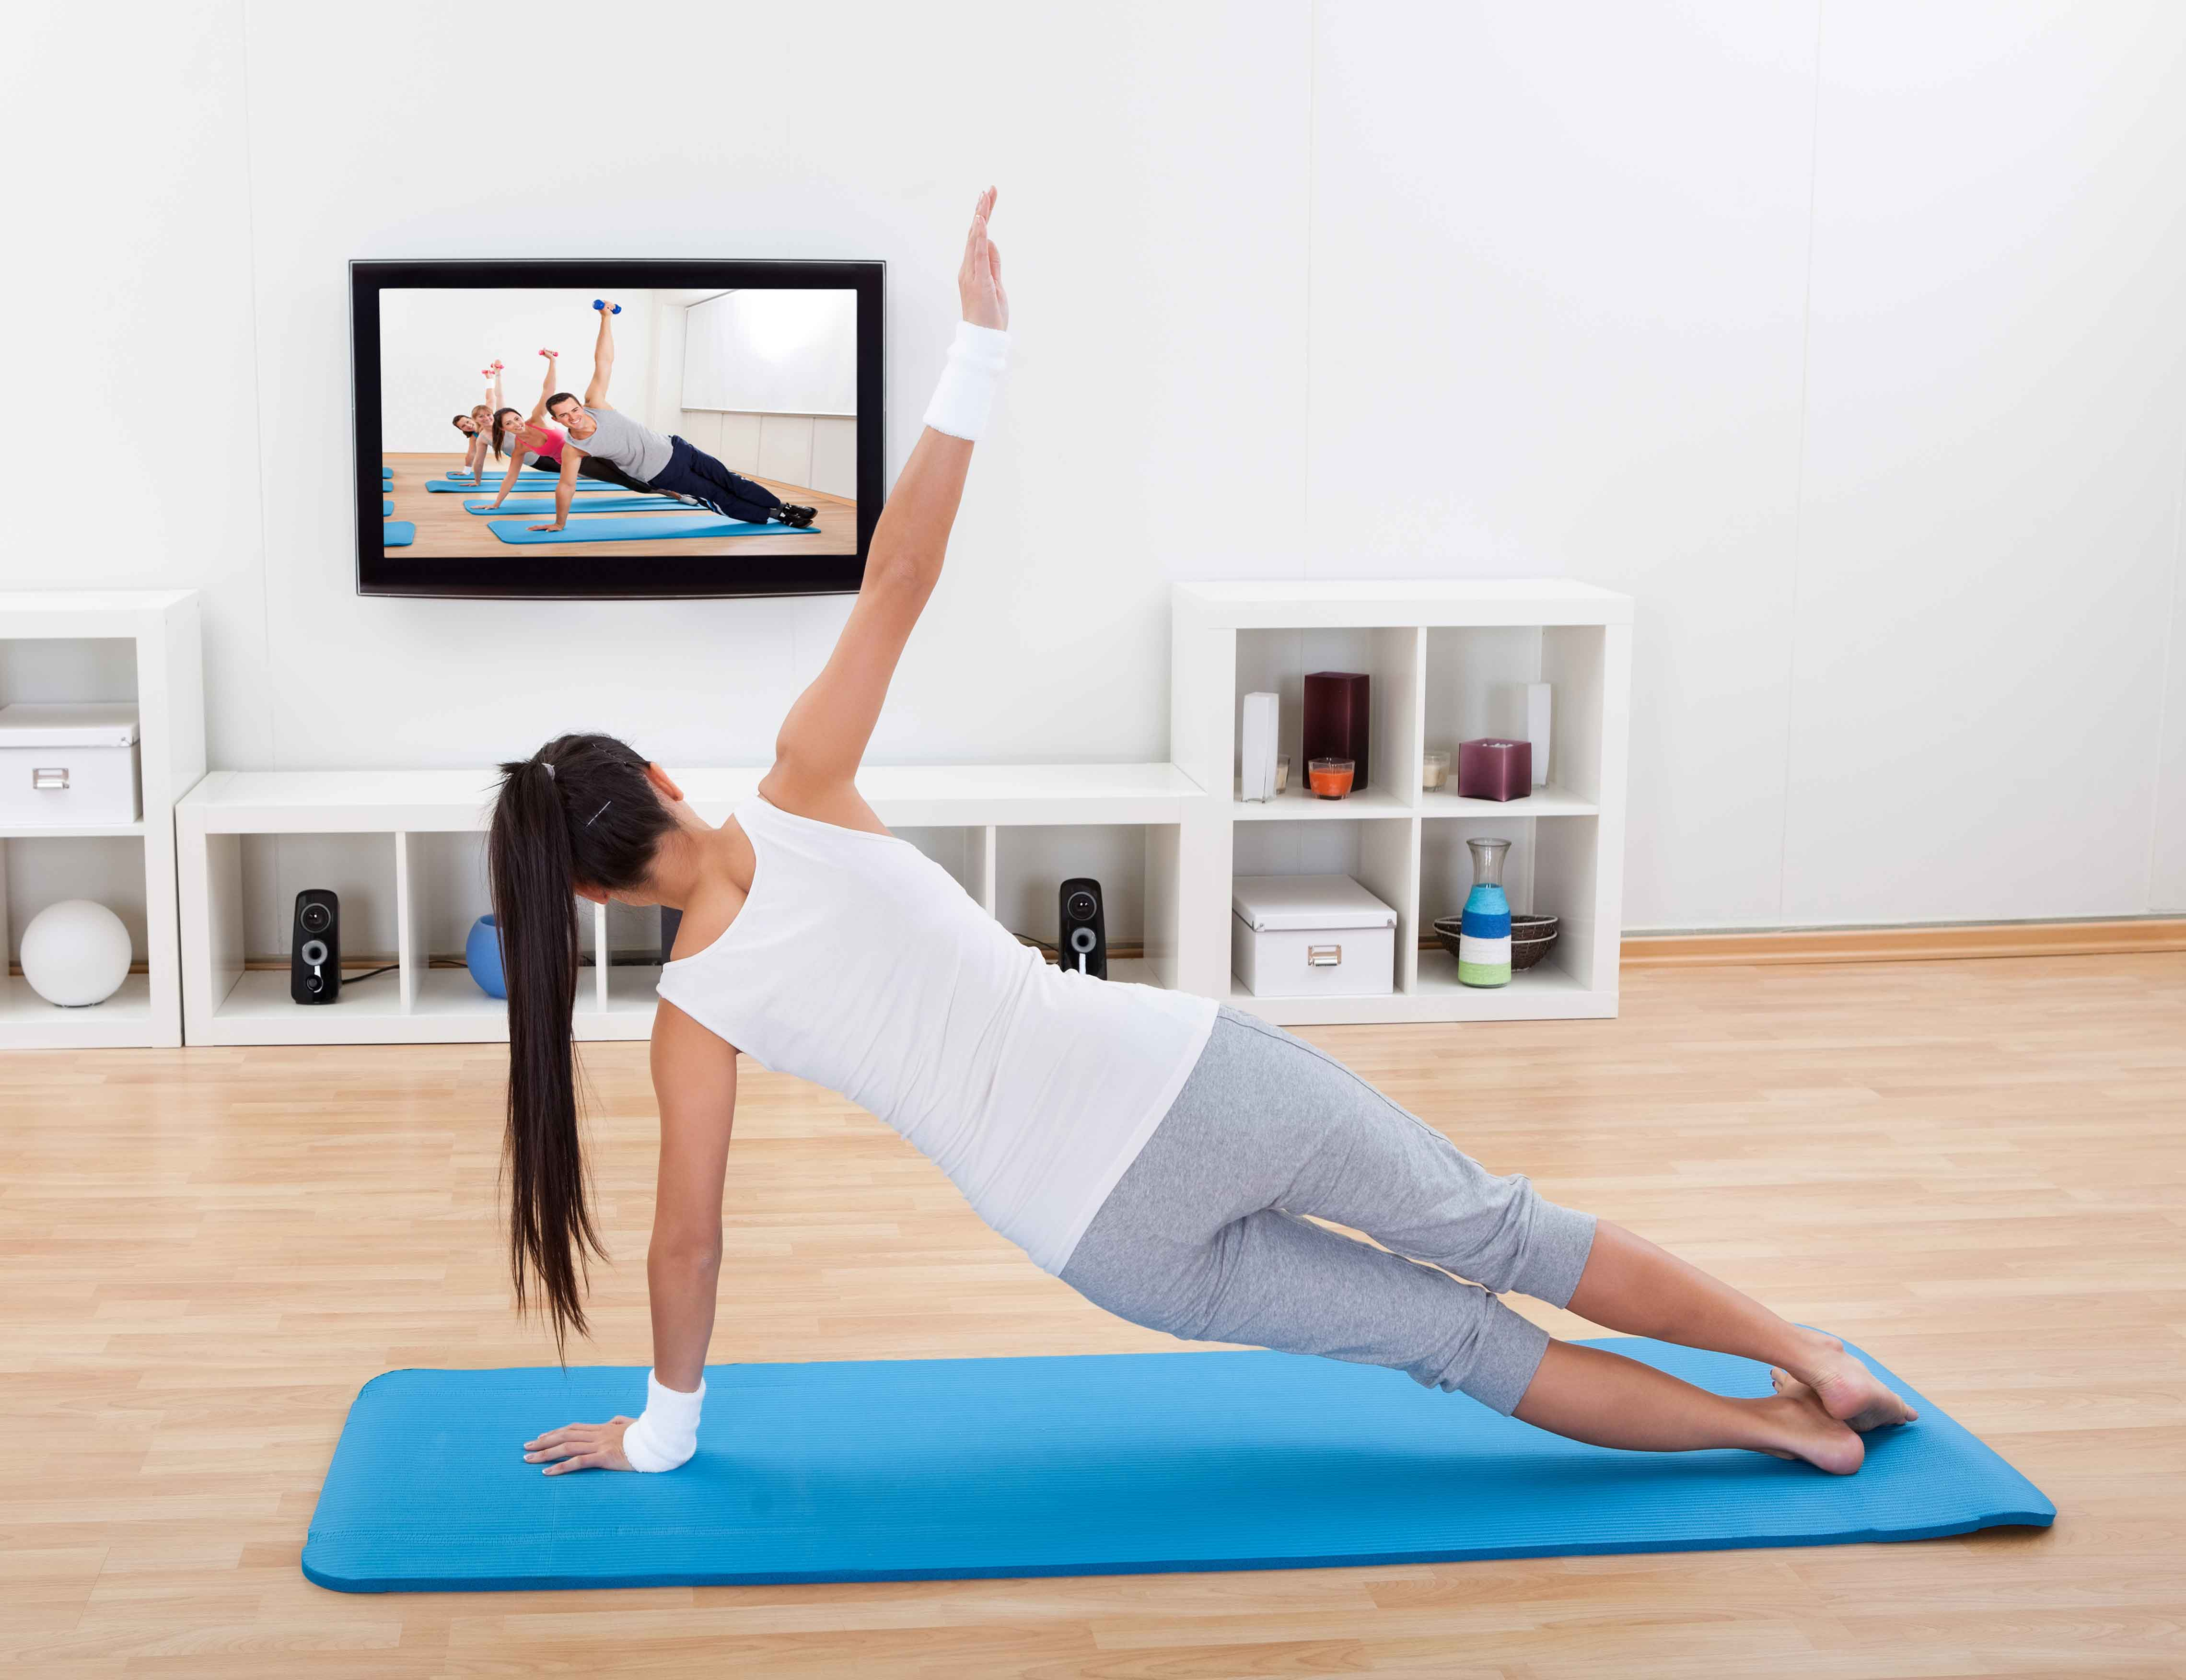 HOW THE FITNESS TRAINER HELP YOU IN VARIOUS SITUATION